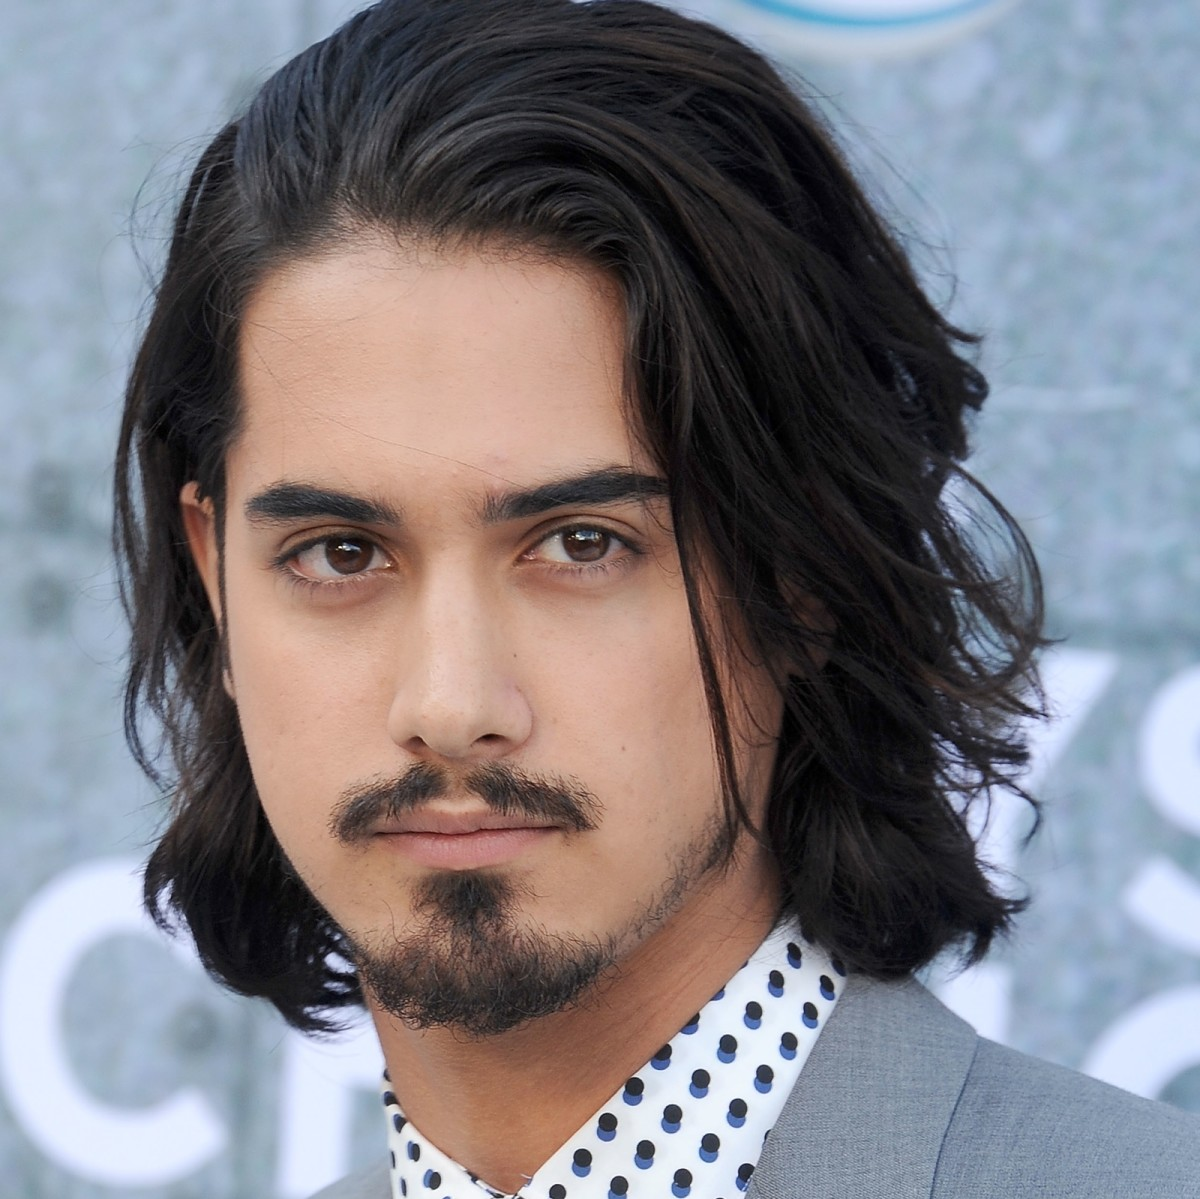 Avon Jogia via Getty Images